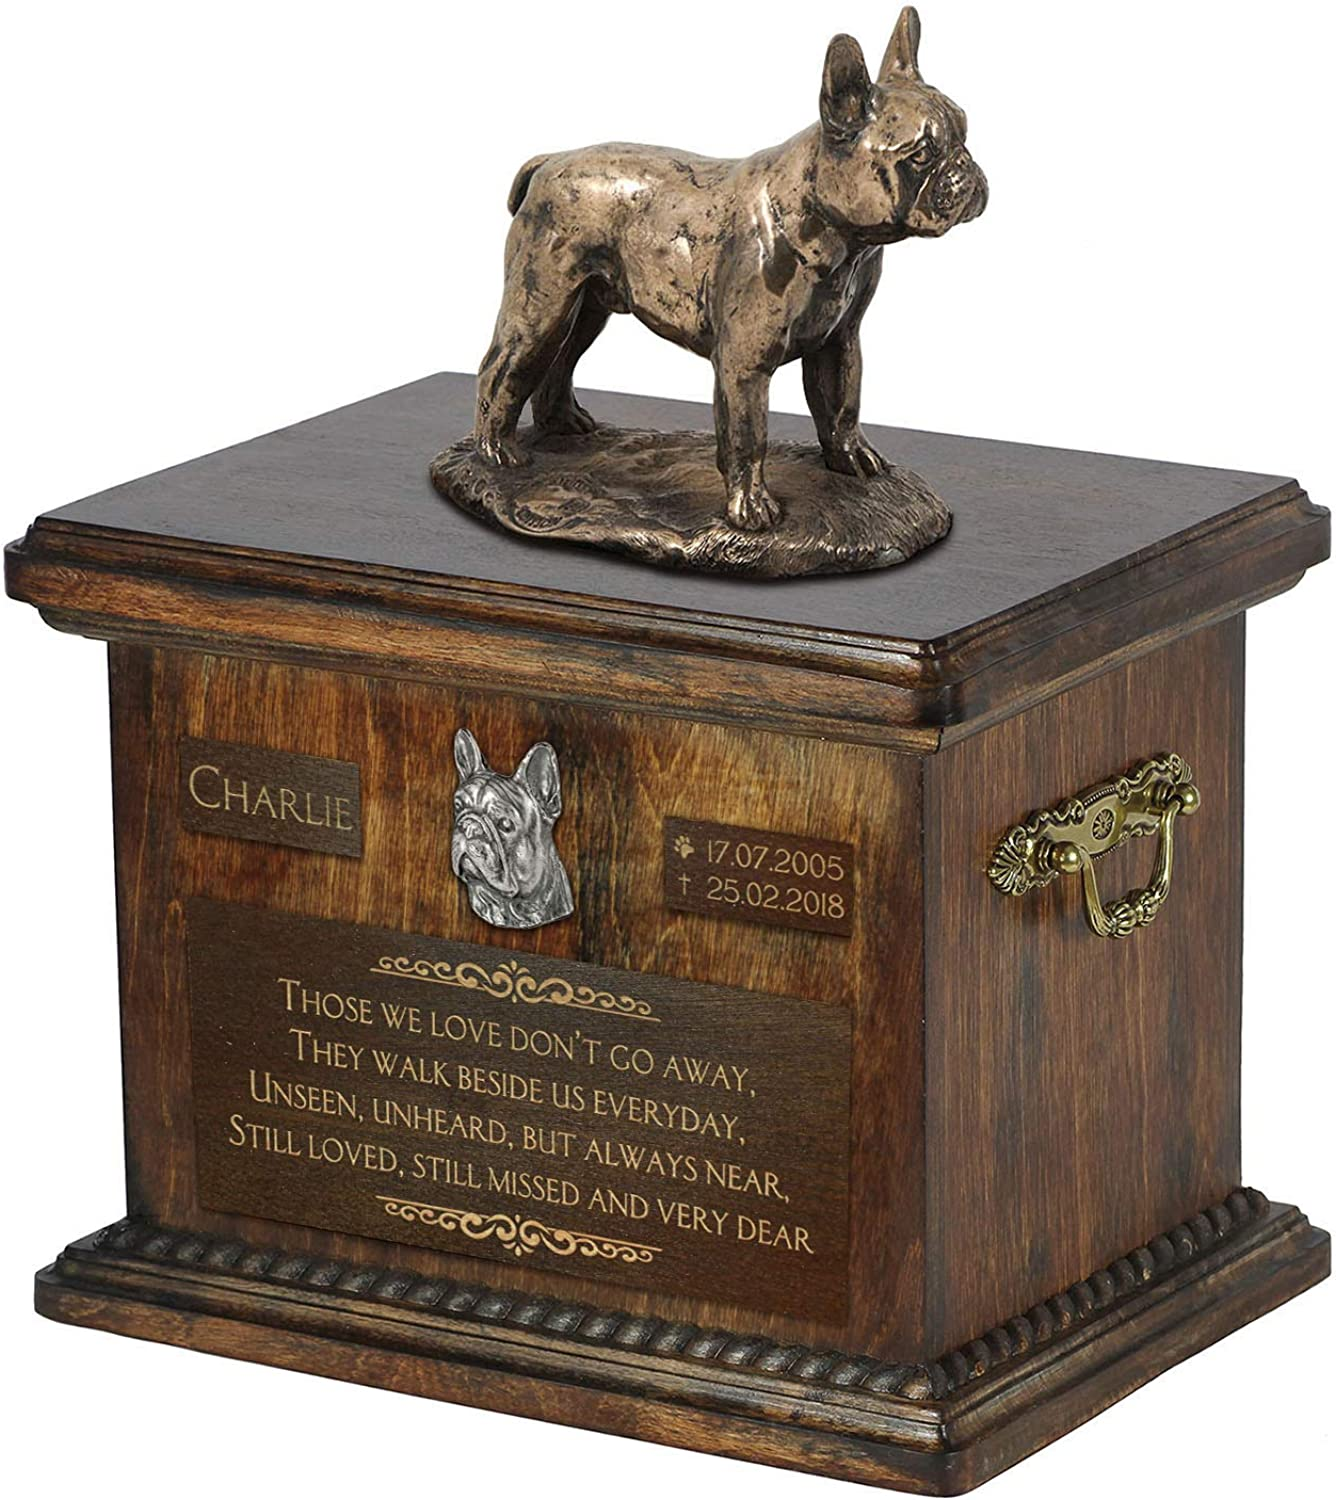 French Bulldog 2, Urn for Dog Ashes Memorial with Statue, Pet's Name and Quote  ArtDog Personalized